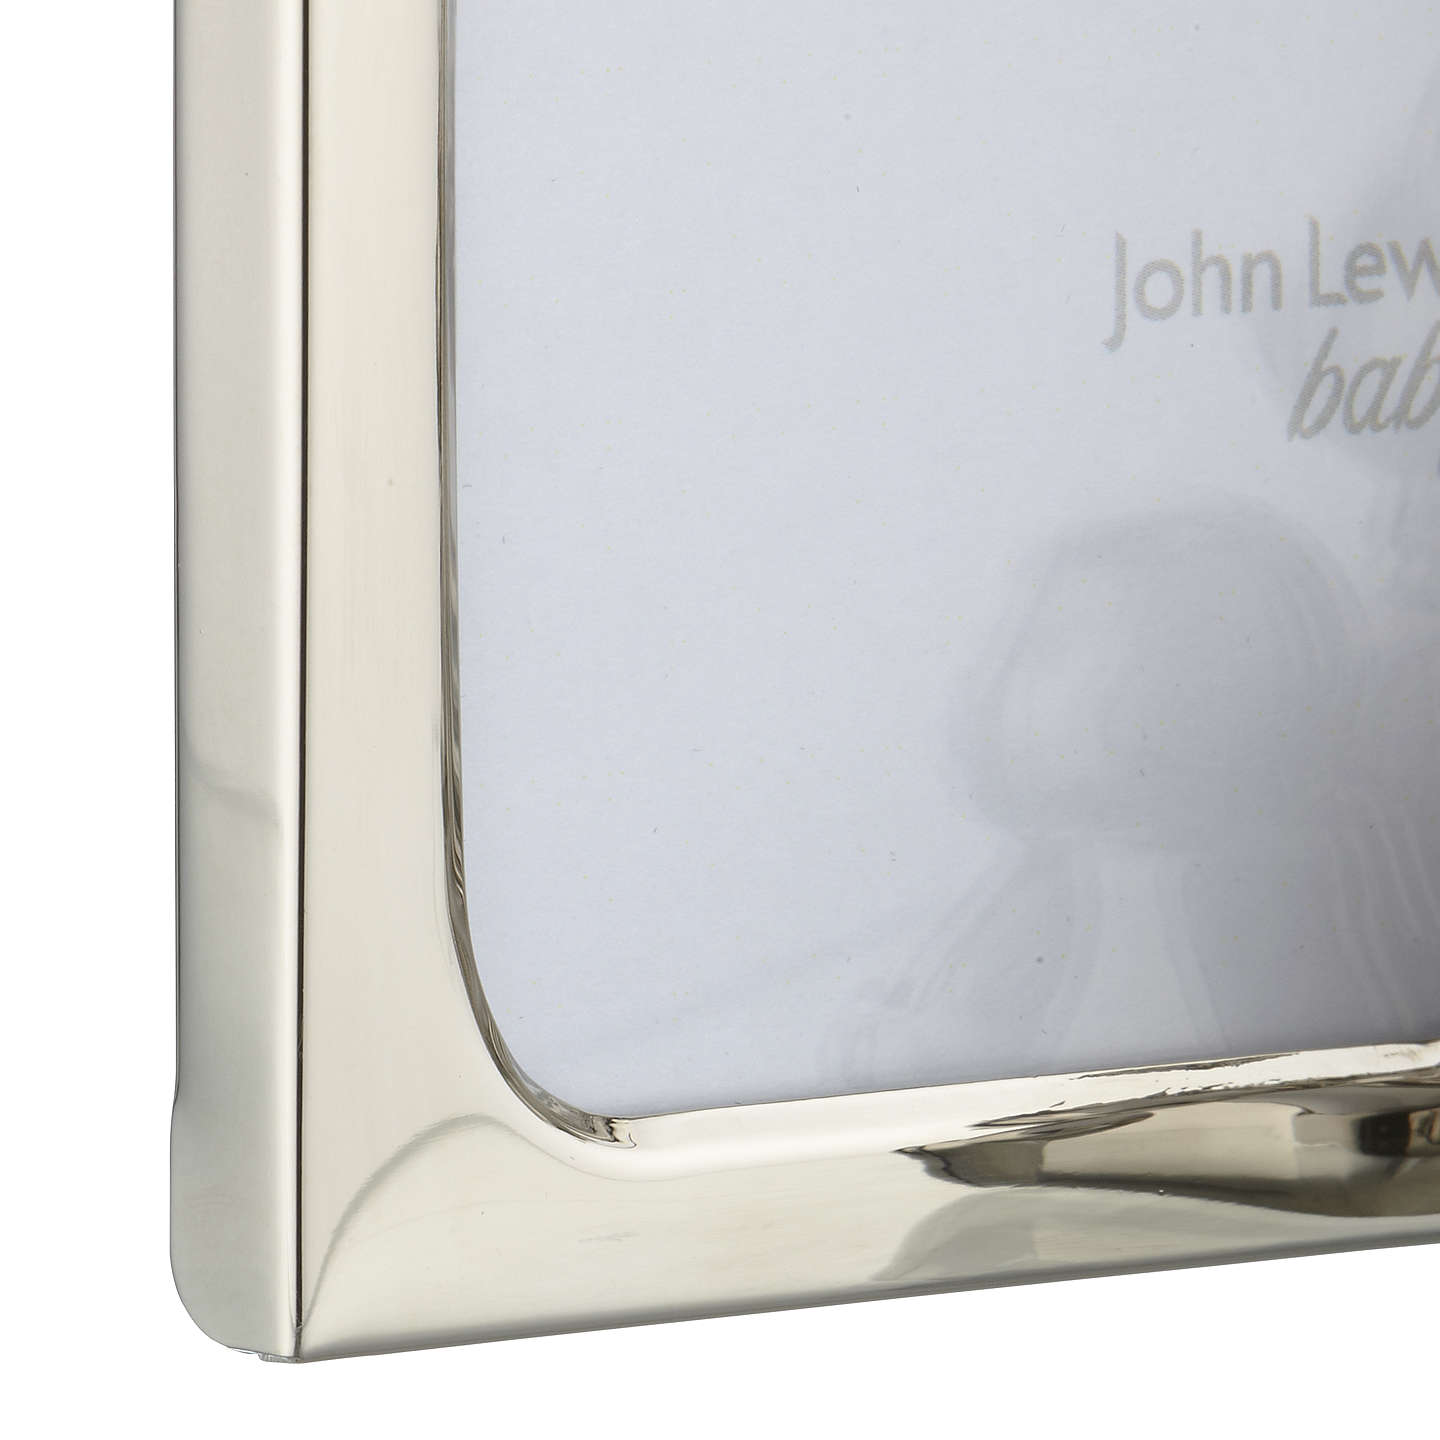 BuyJohn Lewis Giraffe Photo Frame Online at johnlewis.com